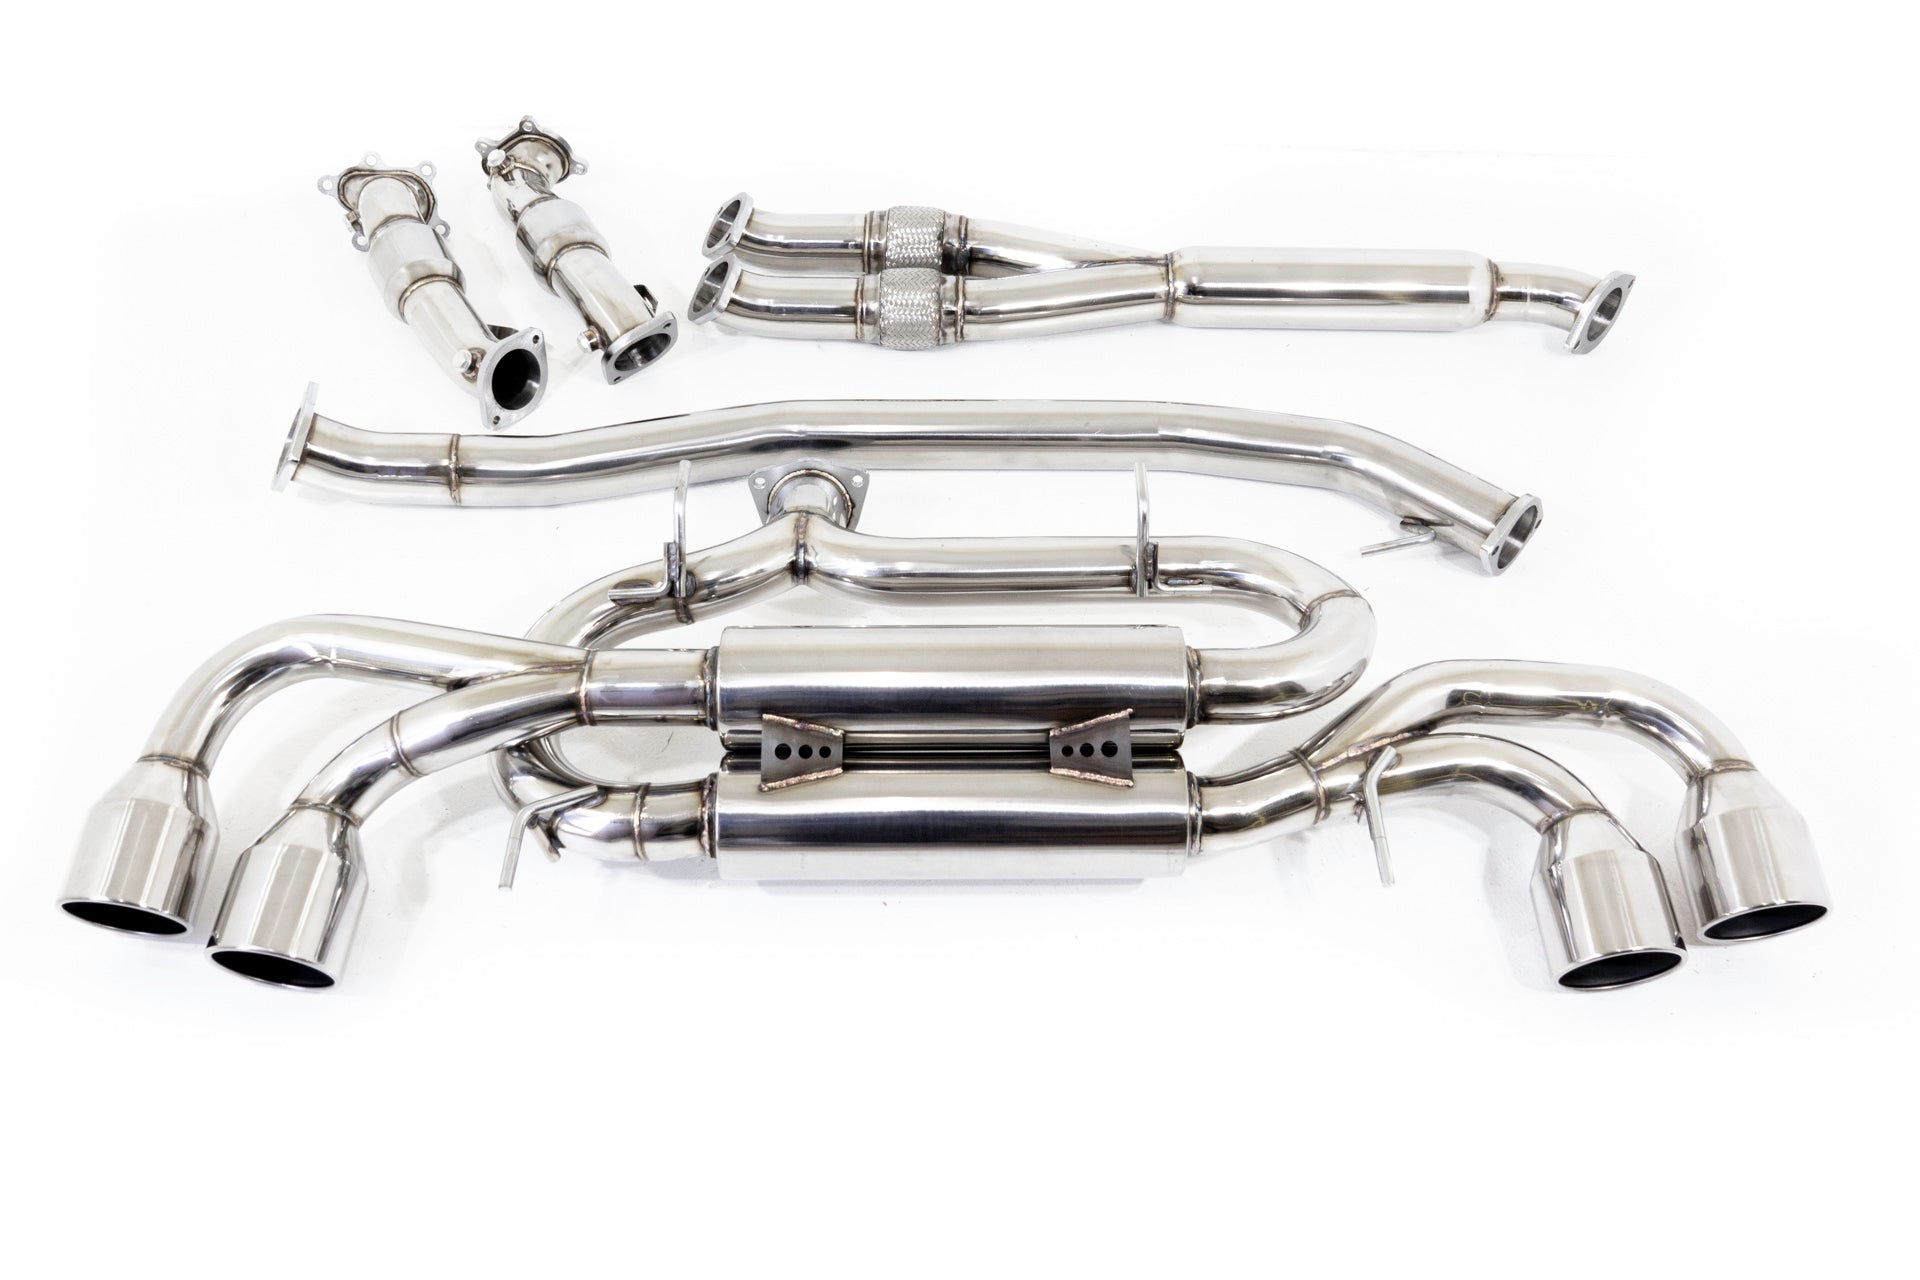 Nissan R35 GT-R Full Exhaust System | Empire